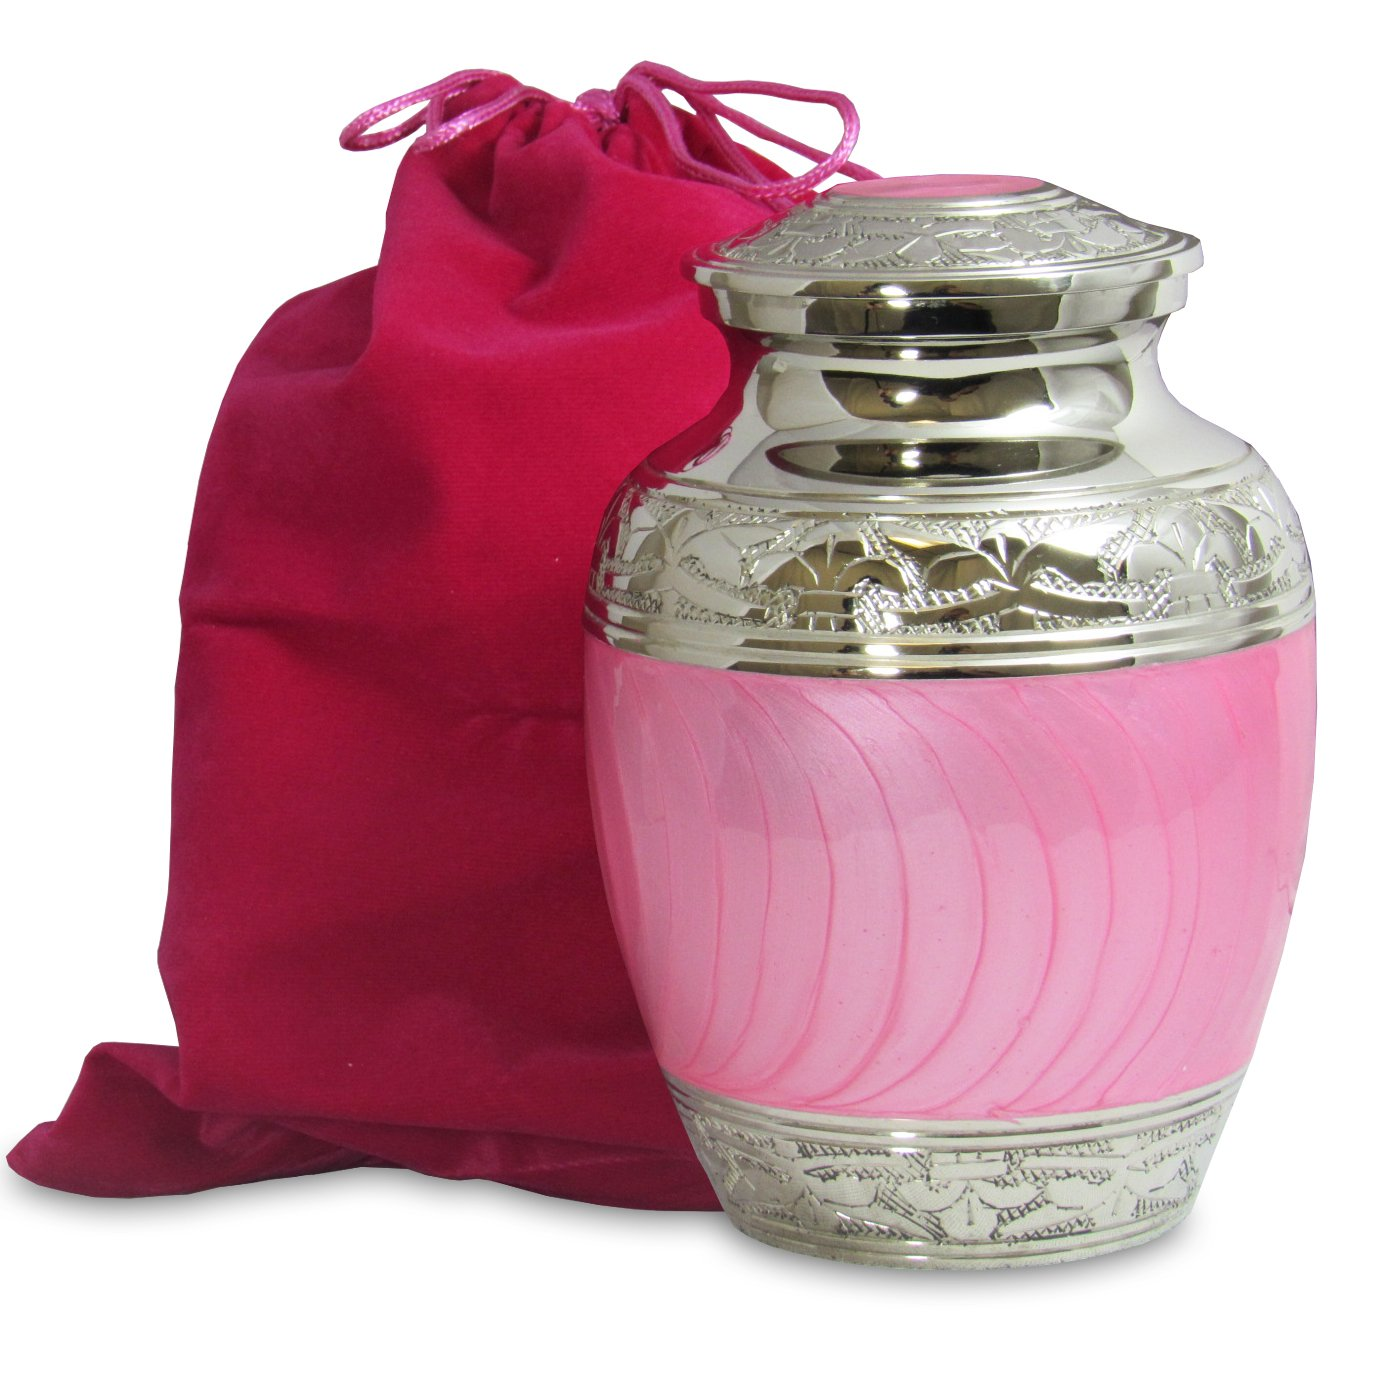 Hugs and Kisses Beautiful Light Pink Child's Cremation Urn For Human Ashes - For a Lost Daughter Baby Girl or Pet Dog or Cat - Find Comfort This Small Beautiful High Quality Urn - w Velvet Bag